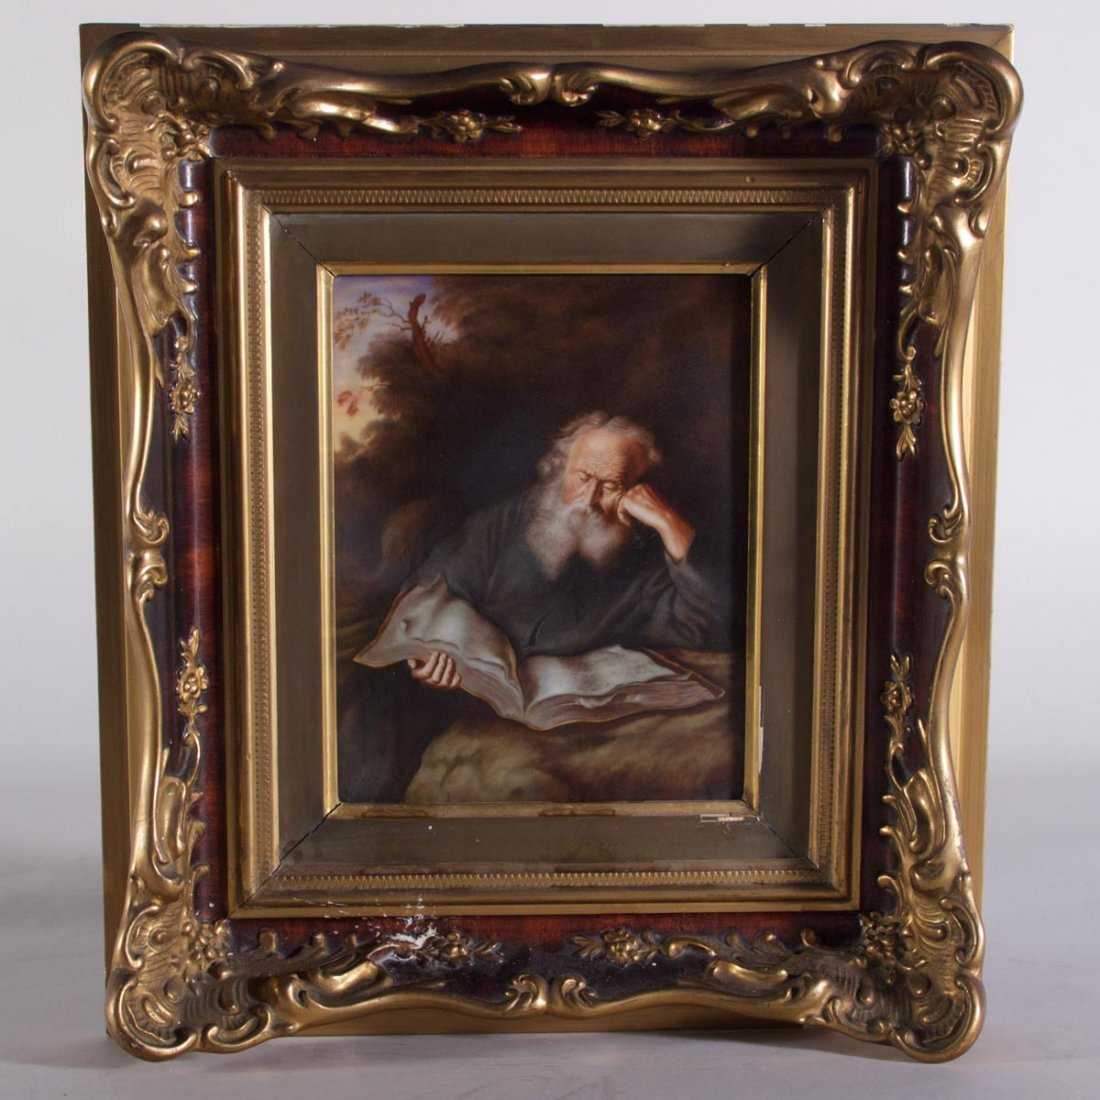 Hand Painted Porcelain Plaque of Scholar